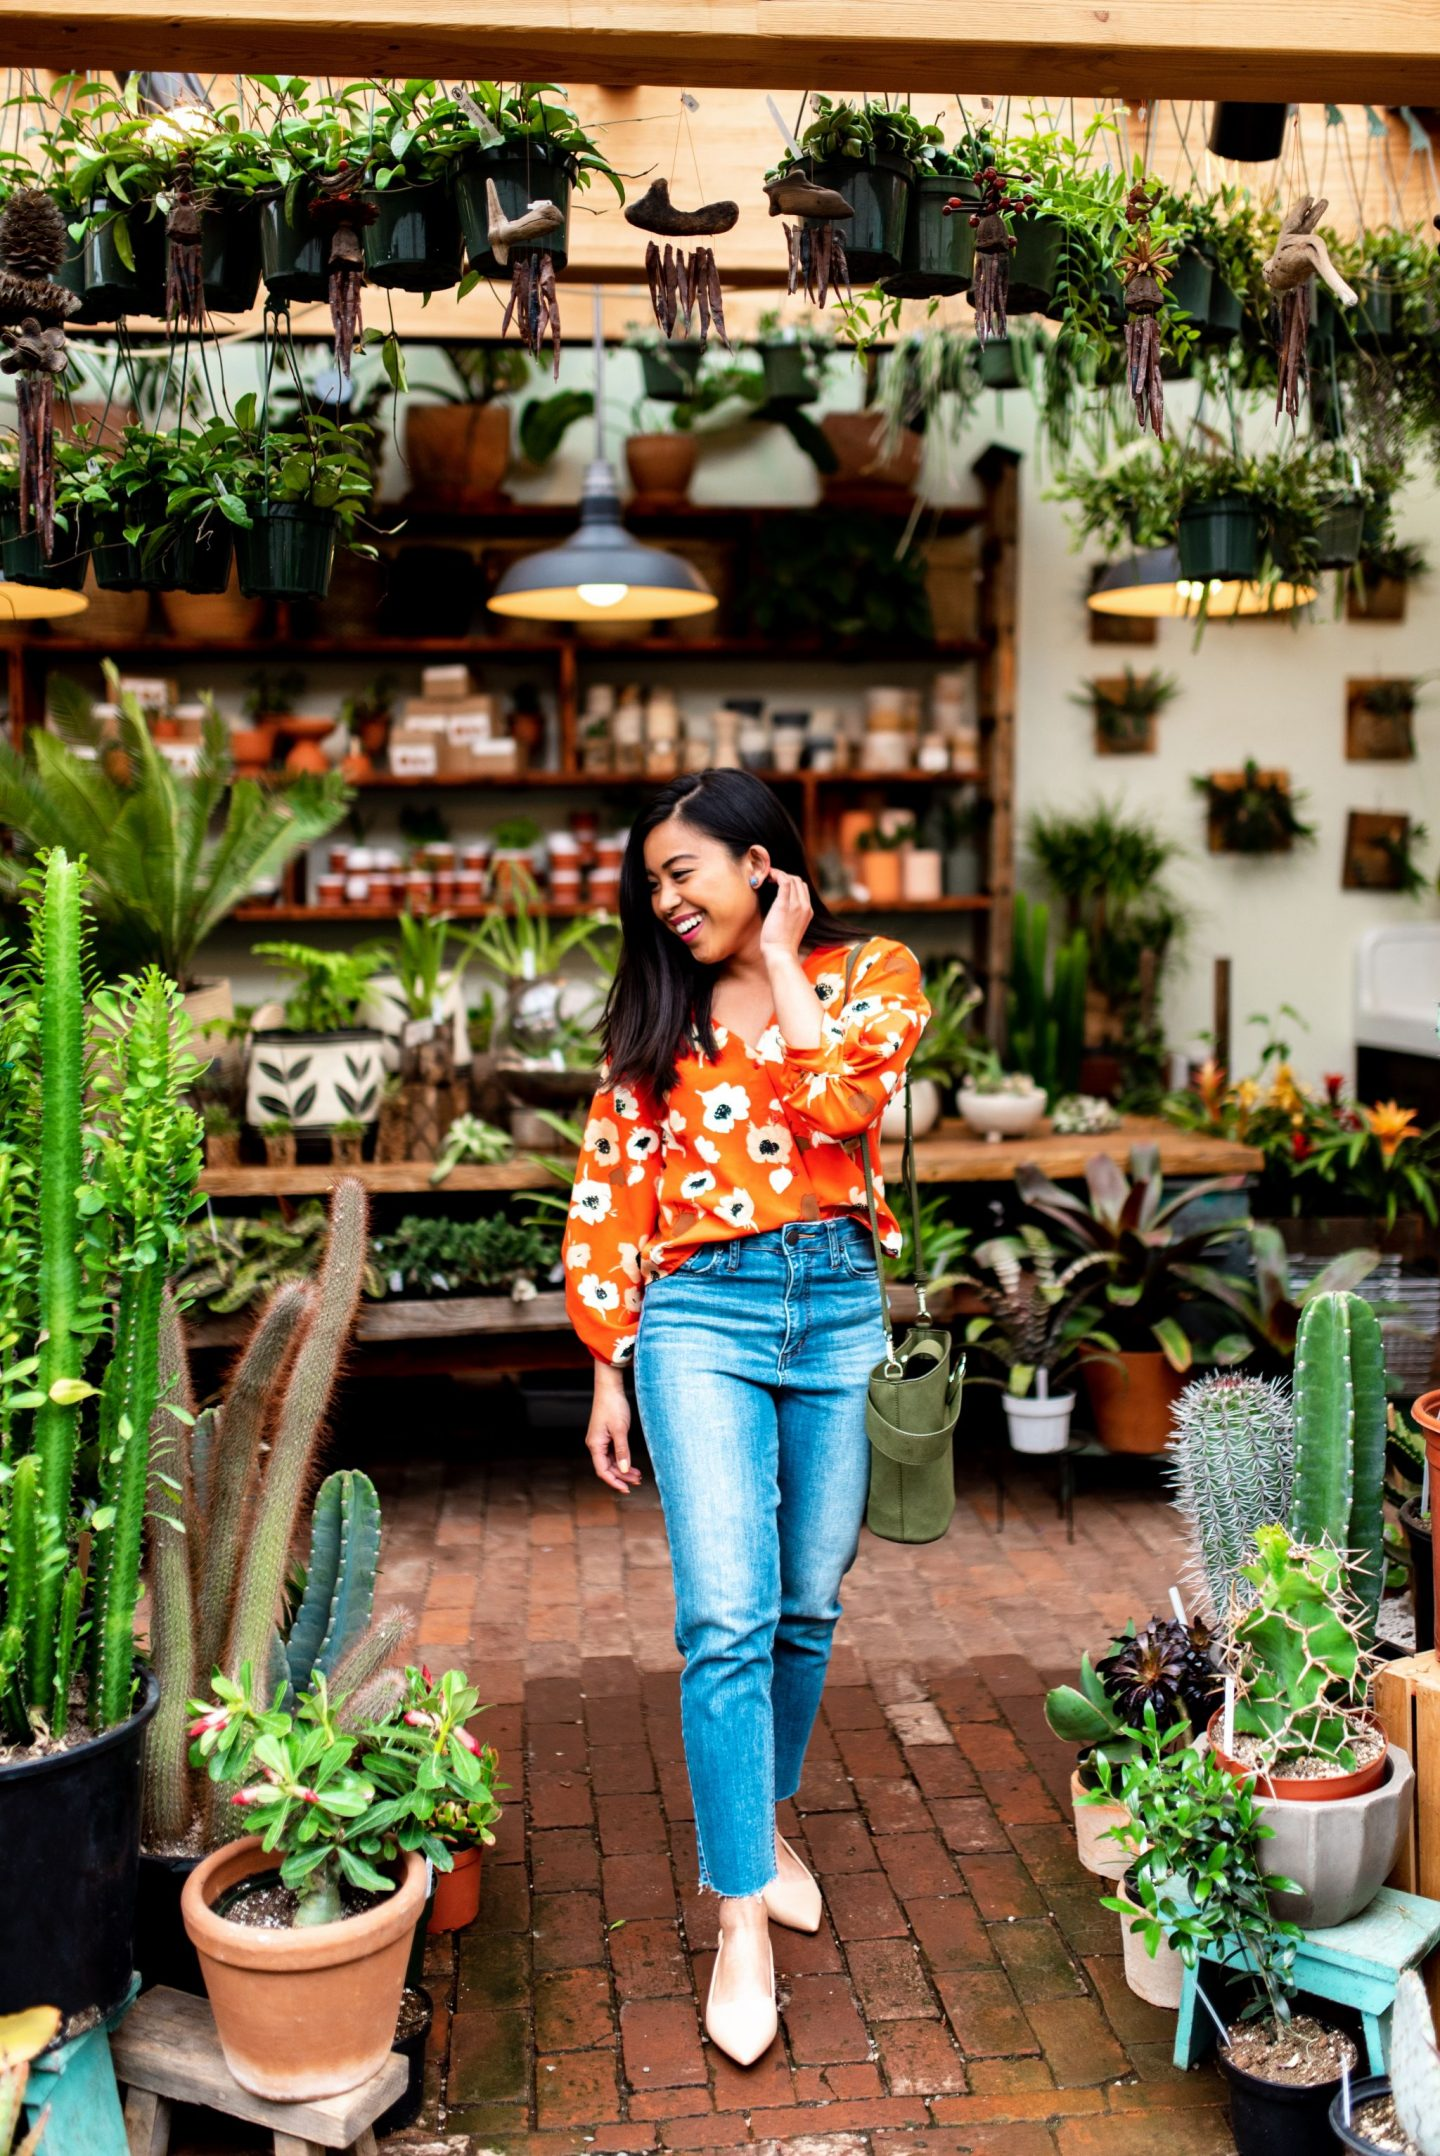 pistils nursery - mom jeans outfits for spring - how to style mom jeans